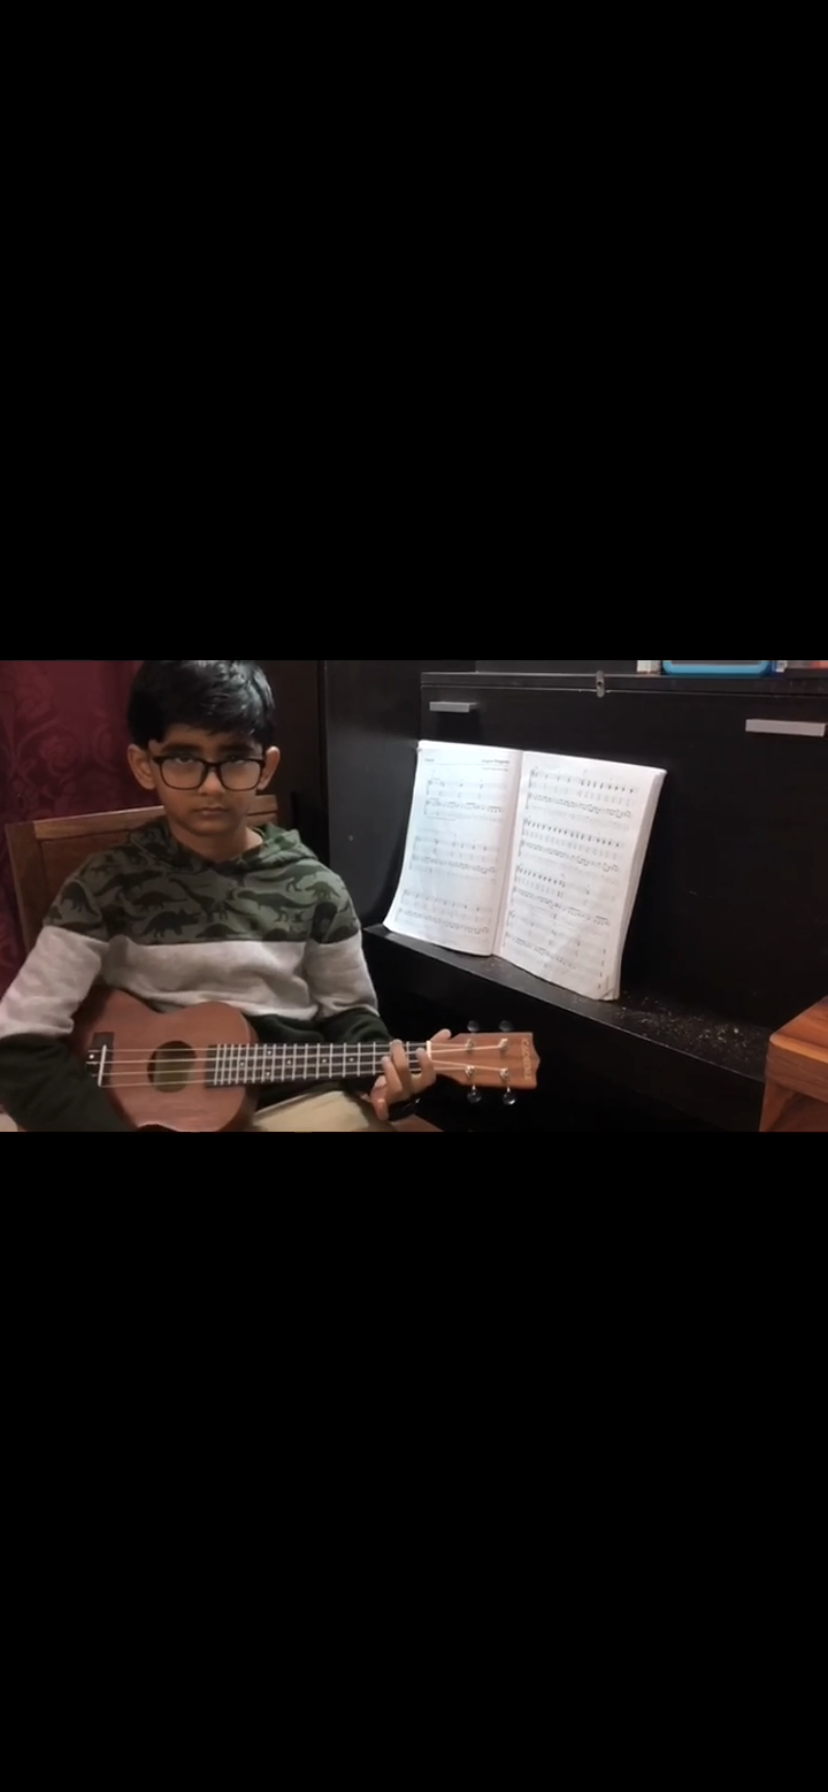 Our young student plays the Ukulele. Guitar,Piano ,Singing online classes and courses